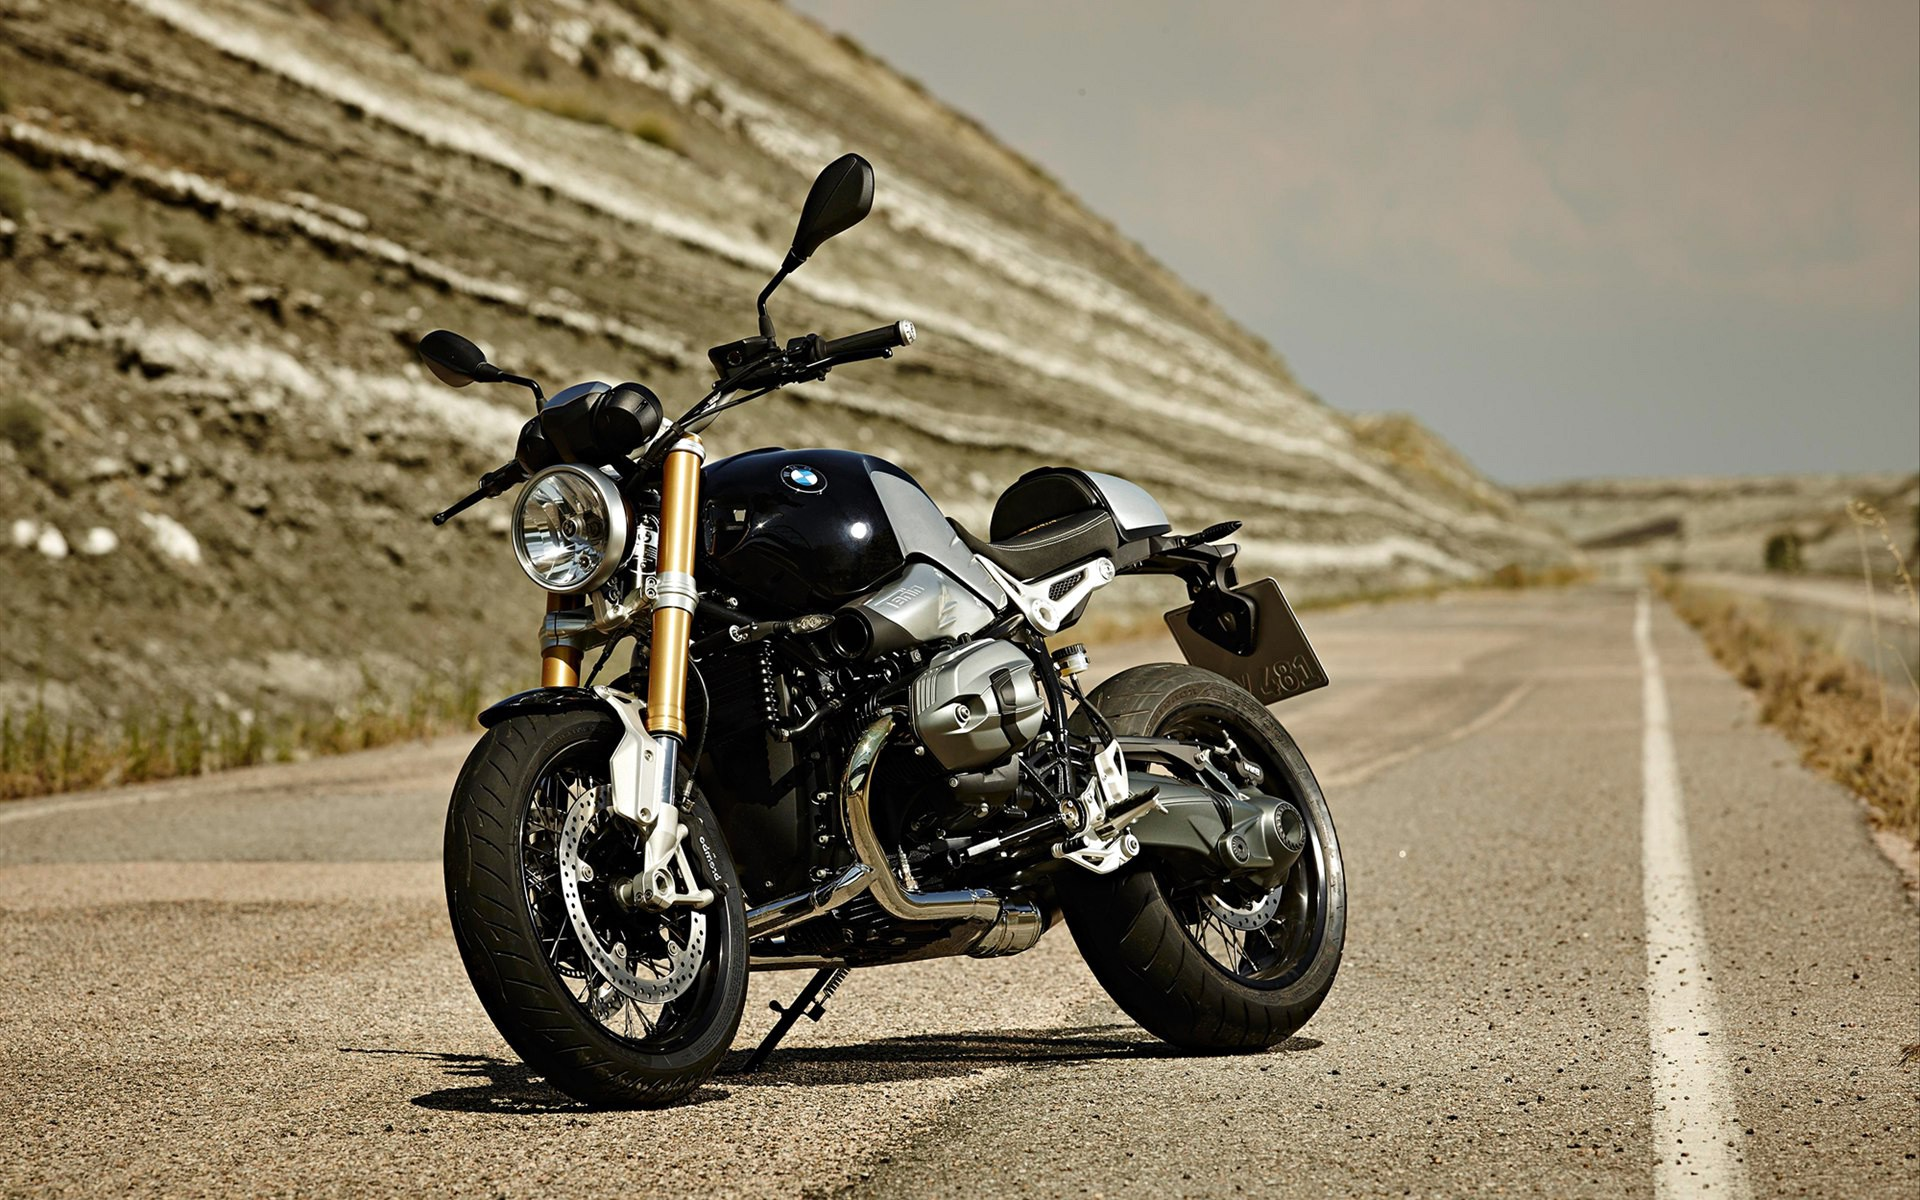 1440x900 Bmw R Ninet 1440x900 Resolution Hd 4k Wallpapers Images Backgrounds Photos And Pictures